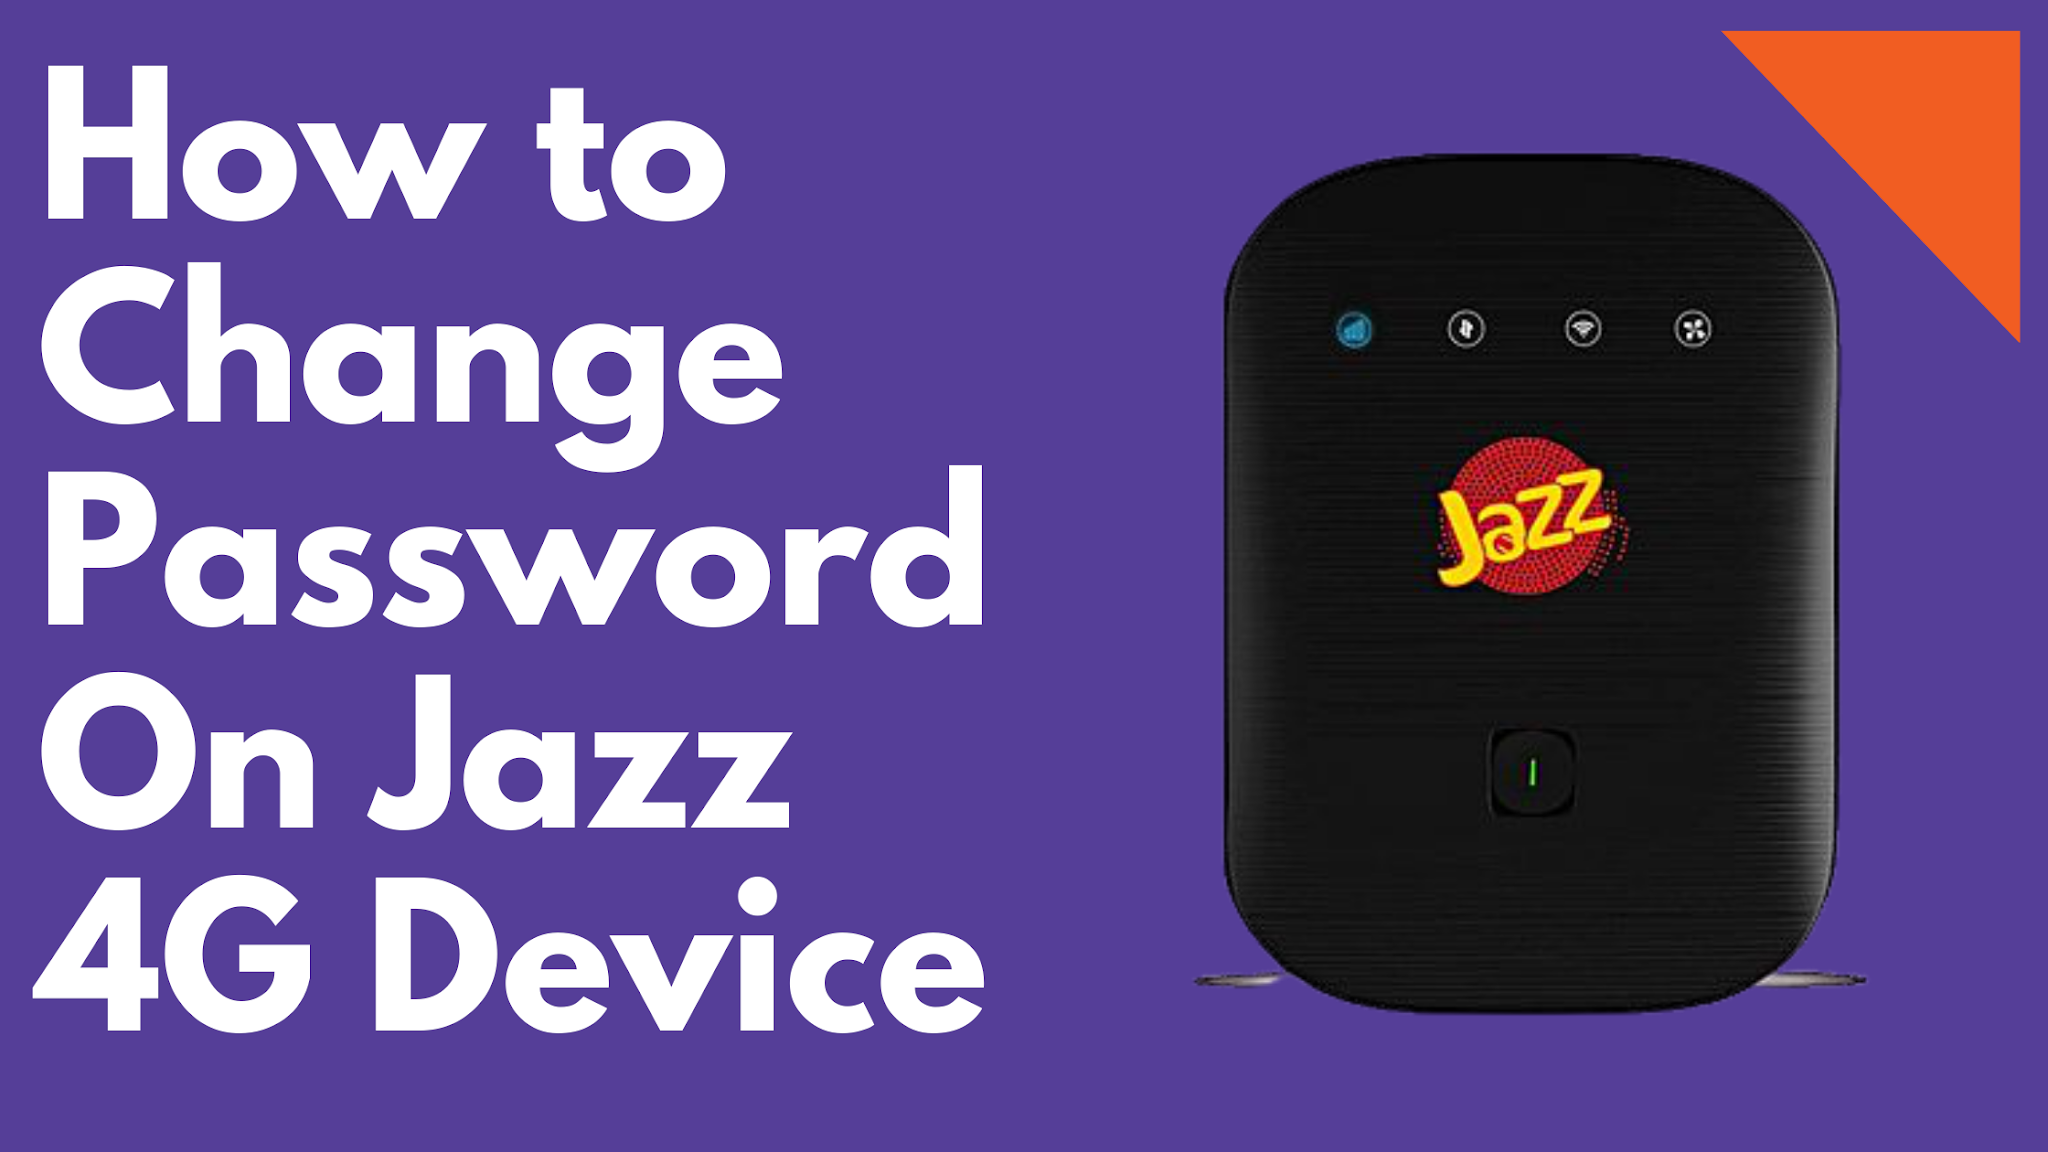 How to change password on jazz 4g device